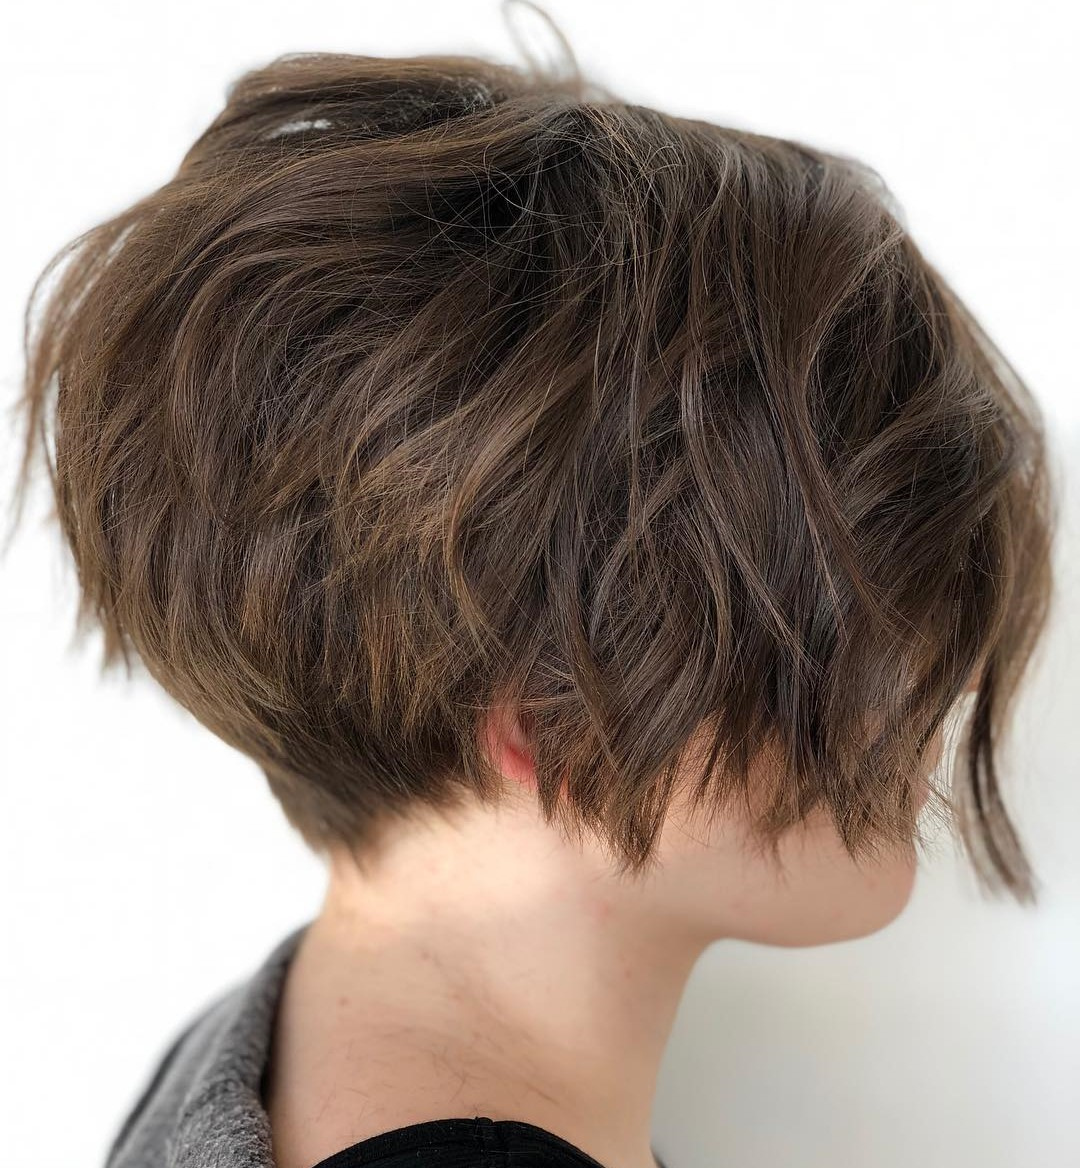 Chic Pixie Bob with Razored Layers